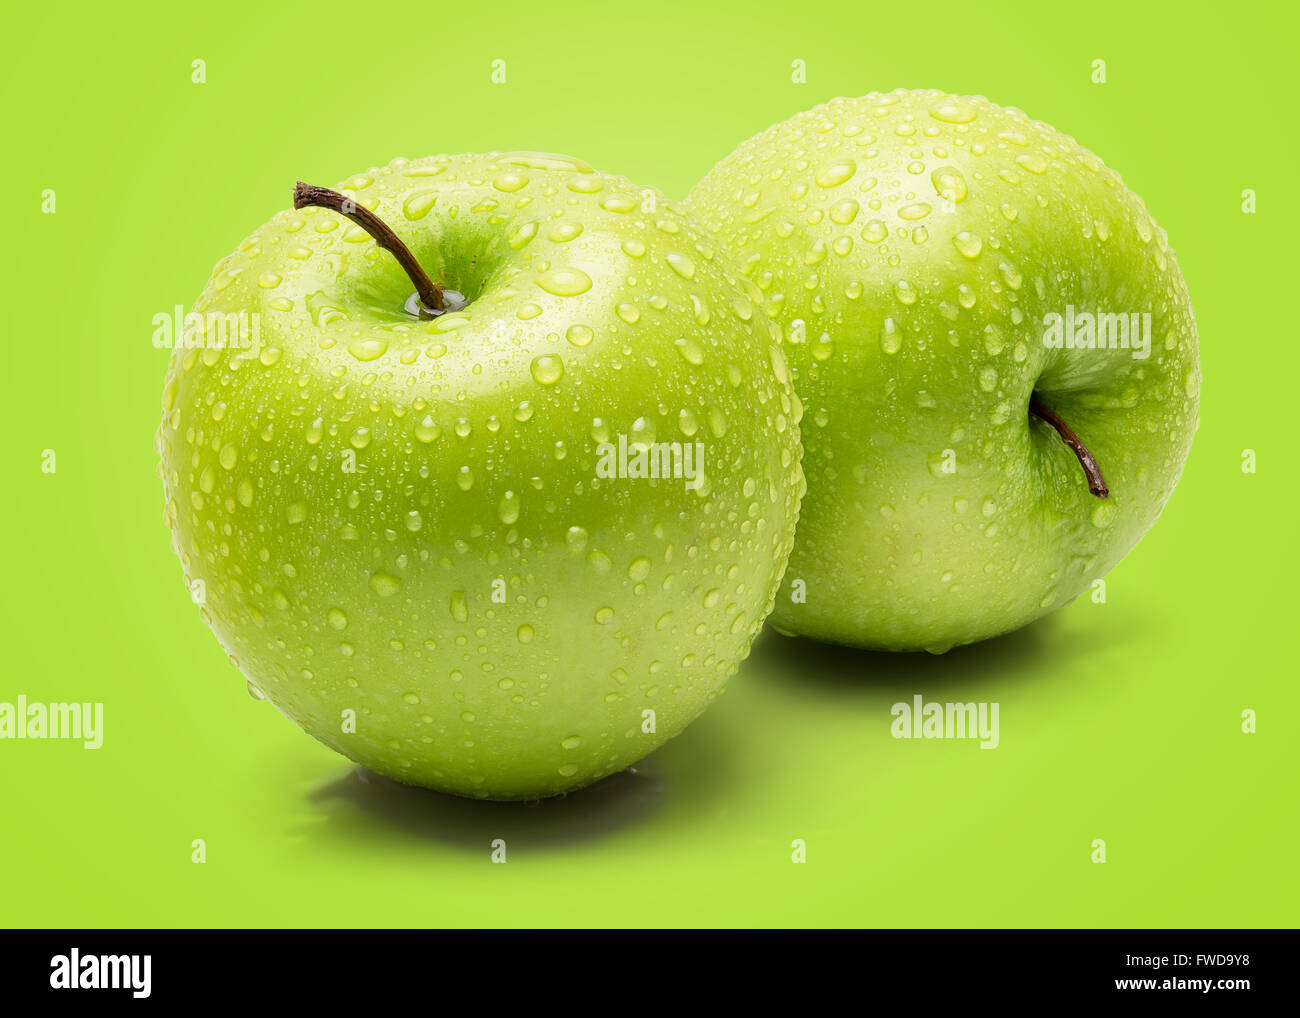 Perfect Fresh Green Apple Isolated on Green Background in Full Depth of Field. - Stock Image